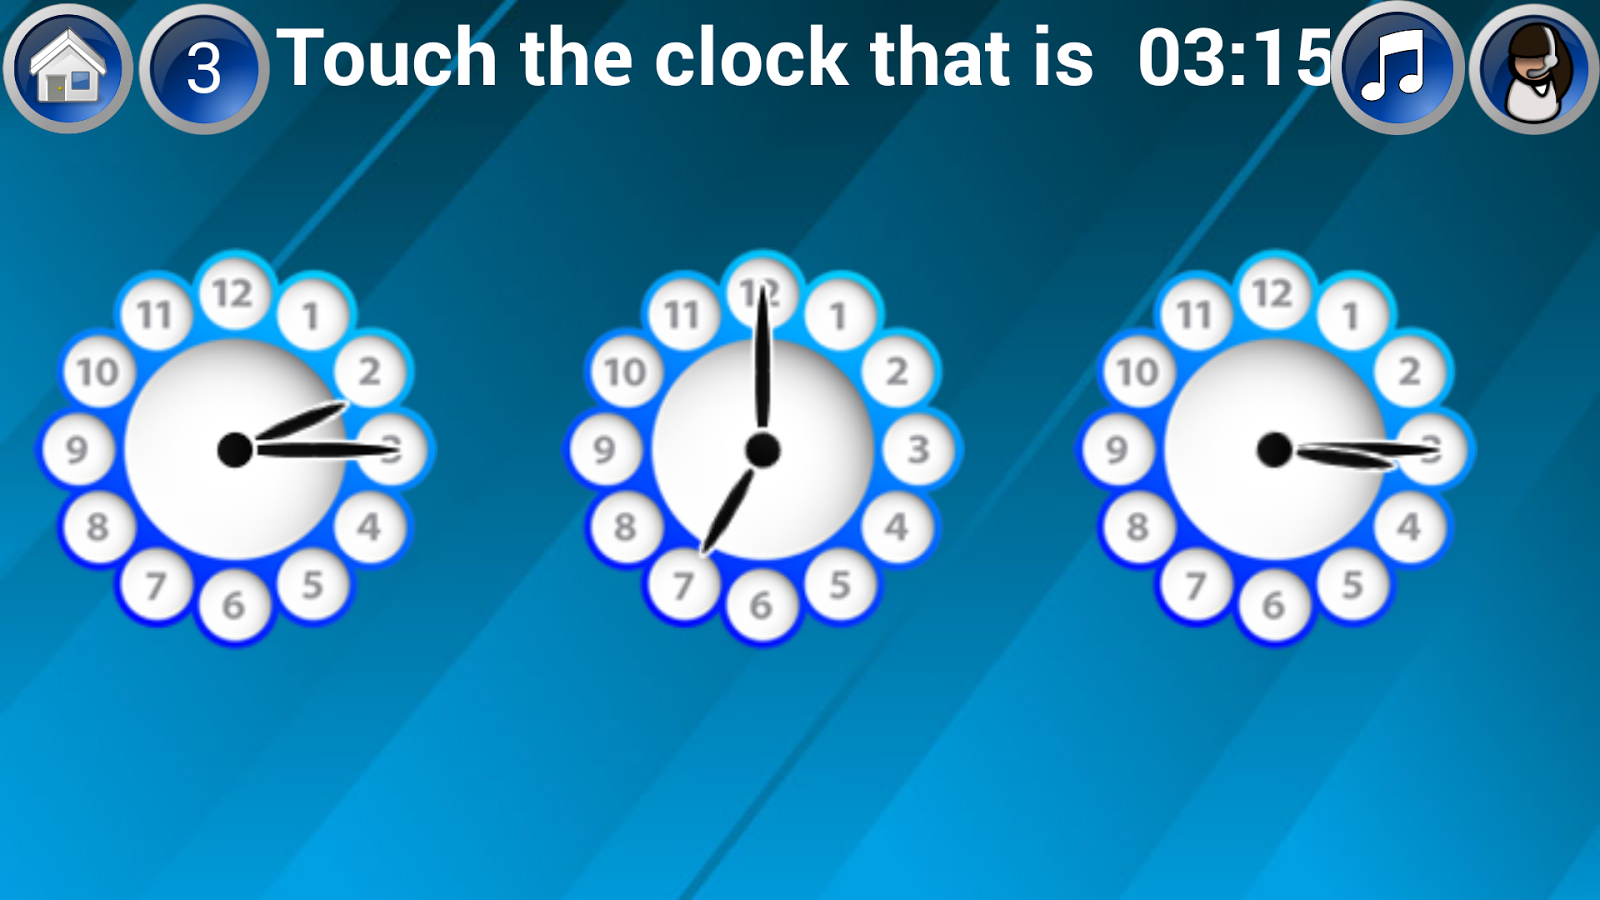 Learn Clock & Tell Time - Android Apps on Google Play